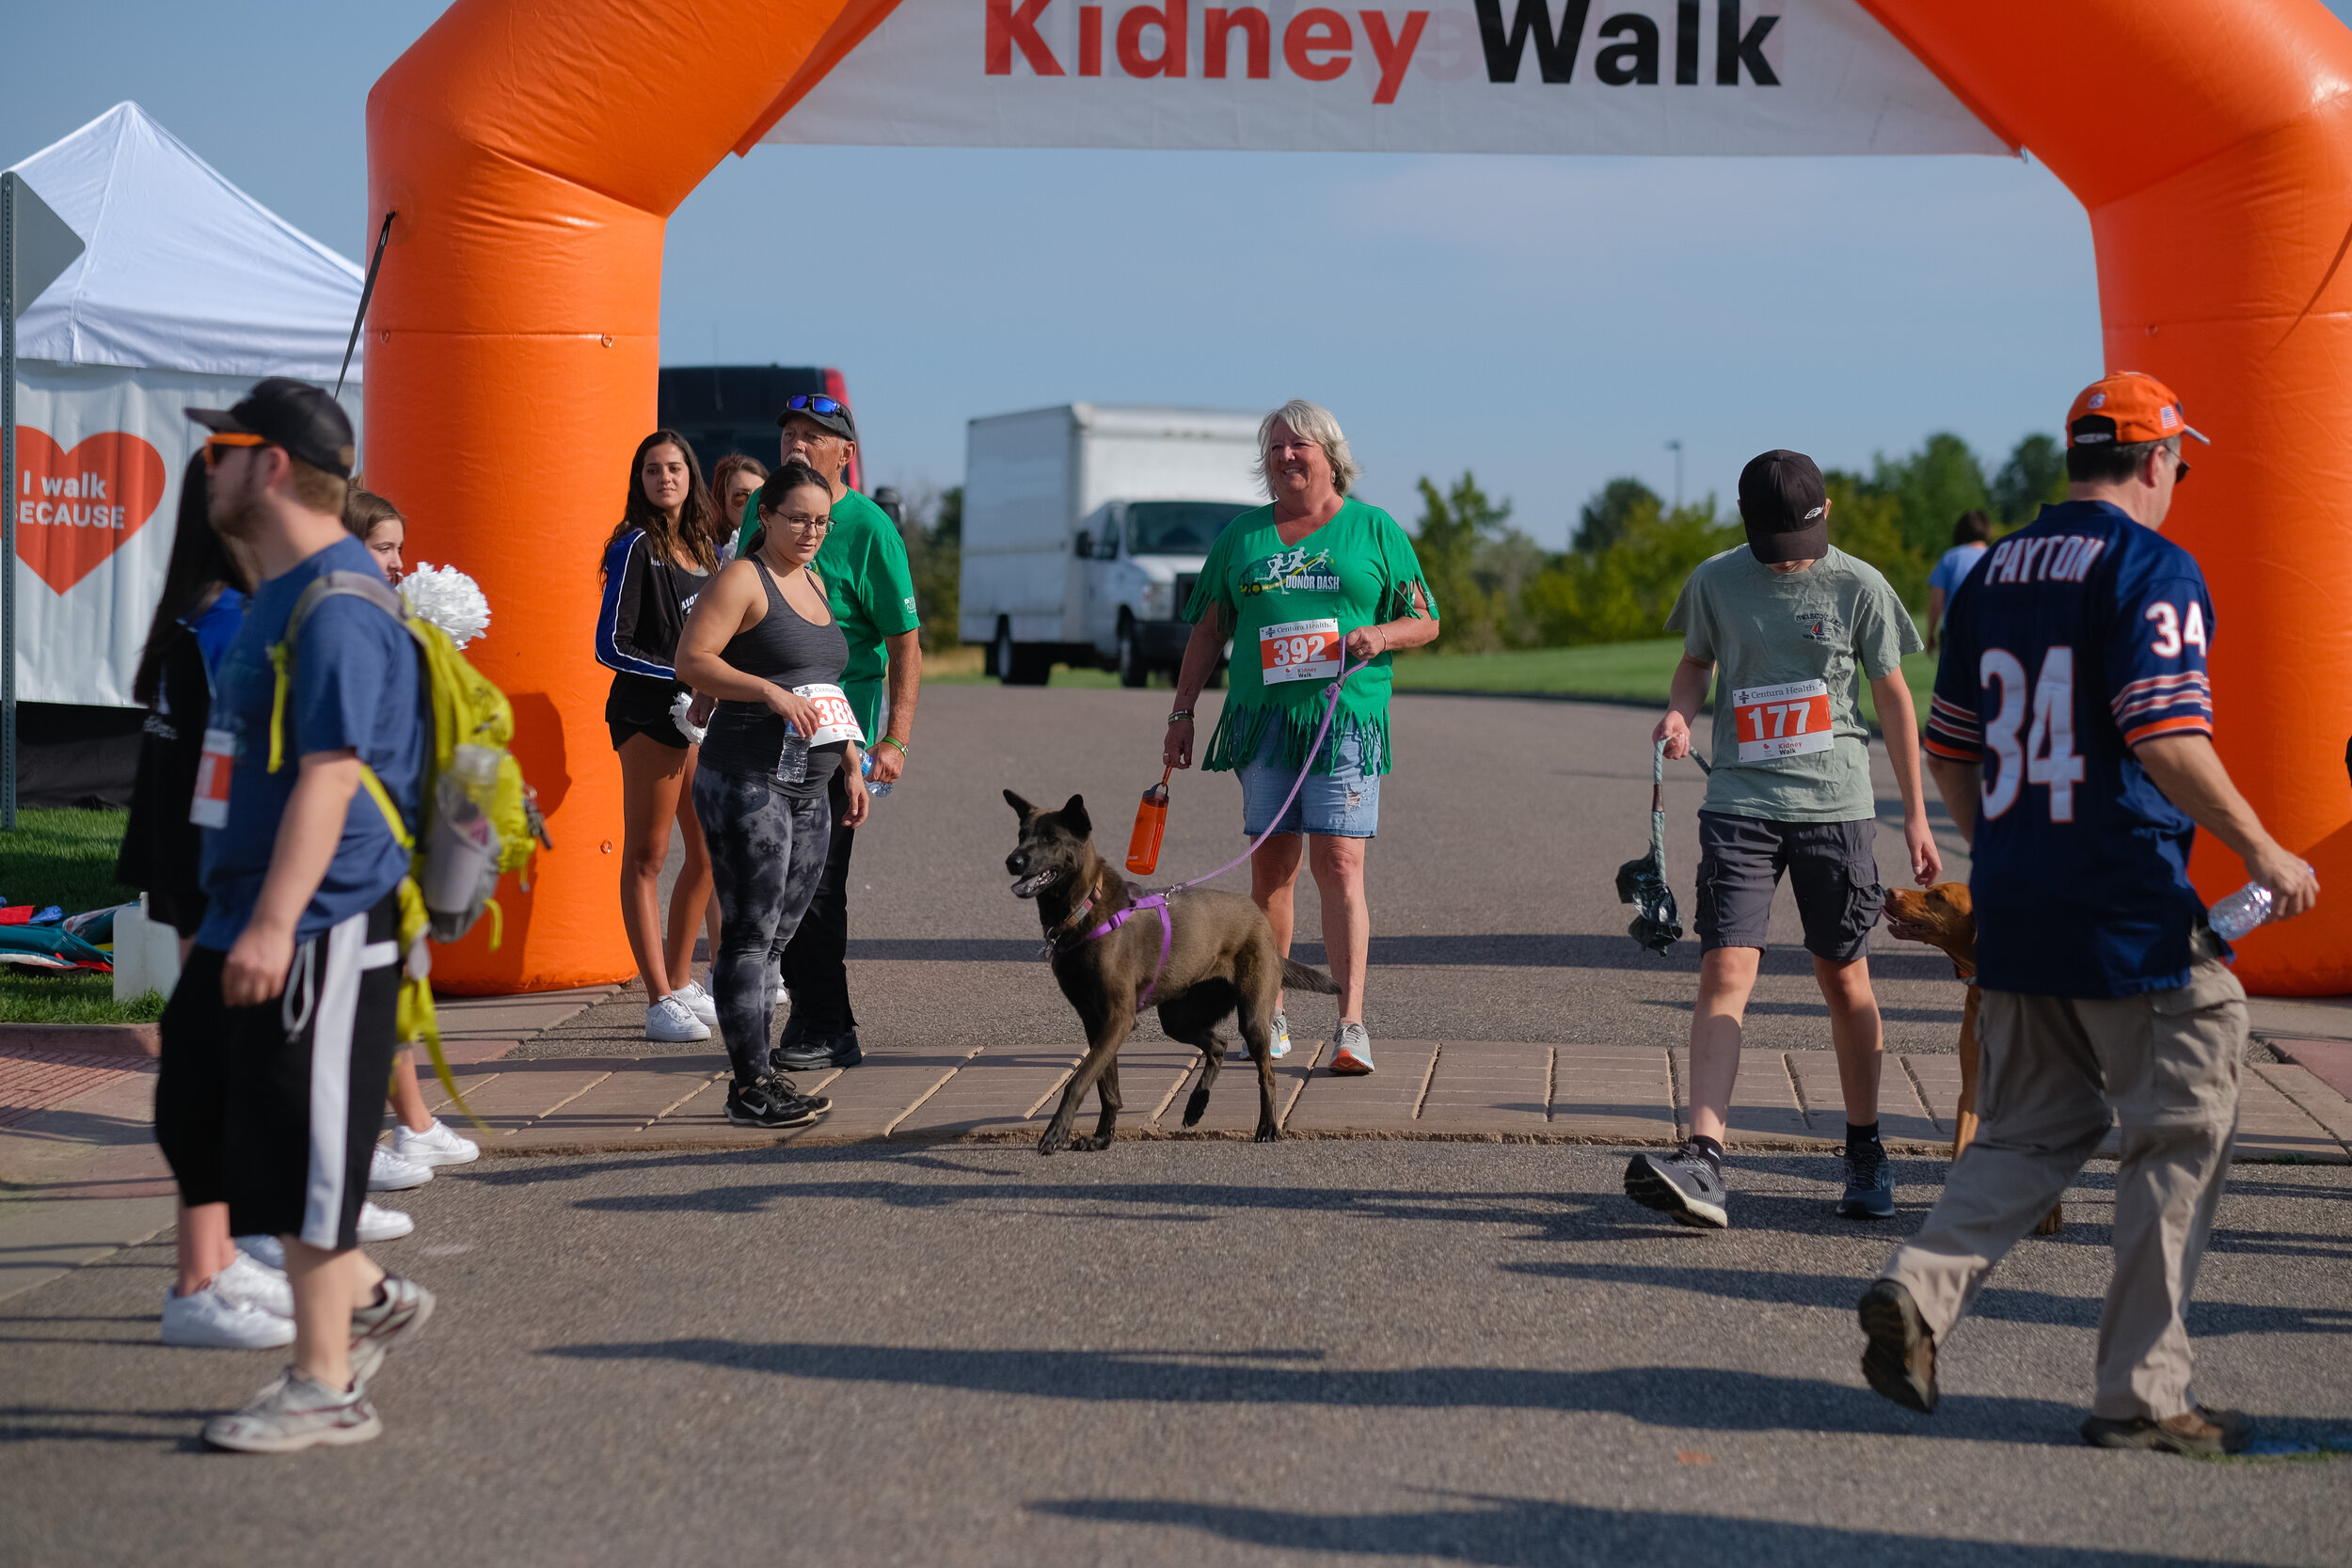 Denver Kidney Walk-146.jpg